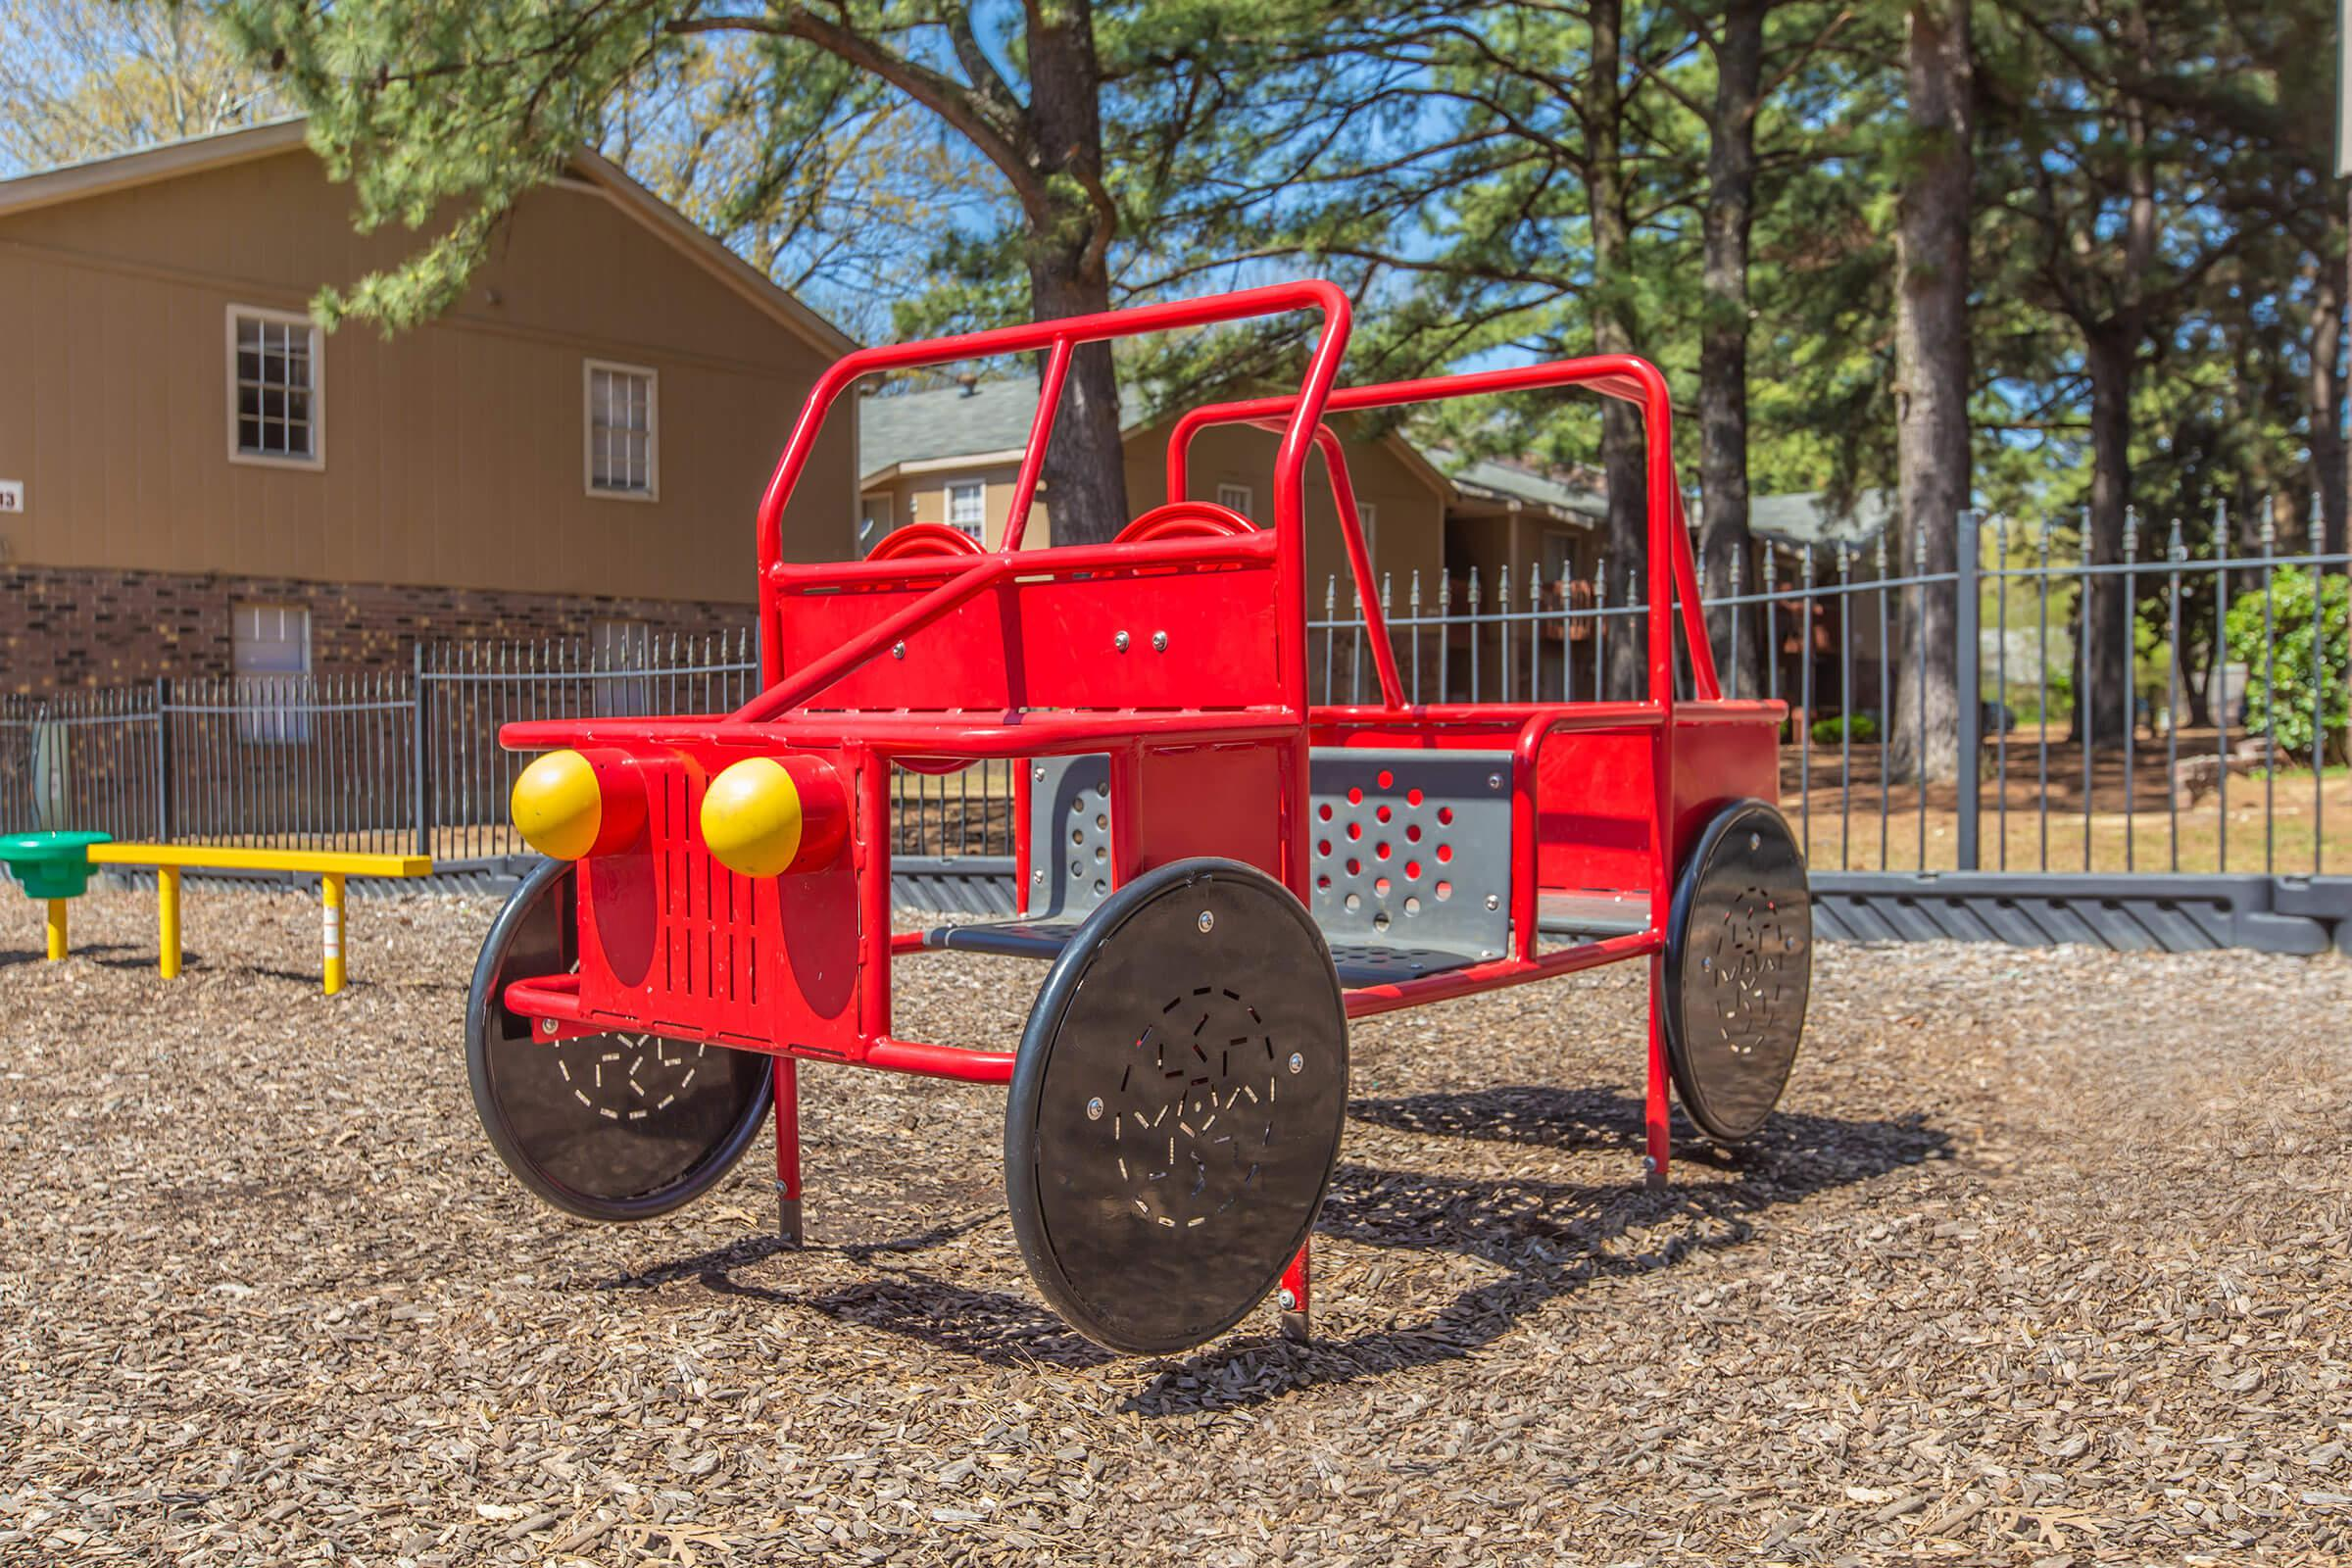 a tractor in a park